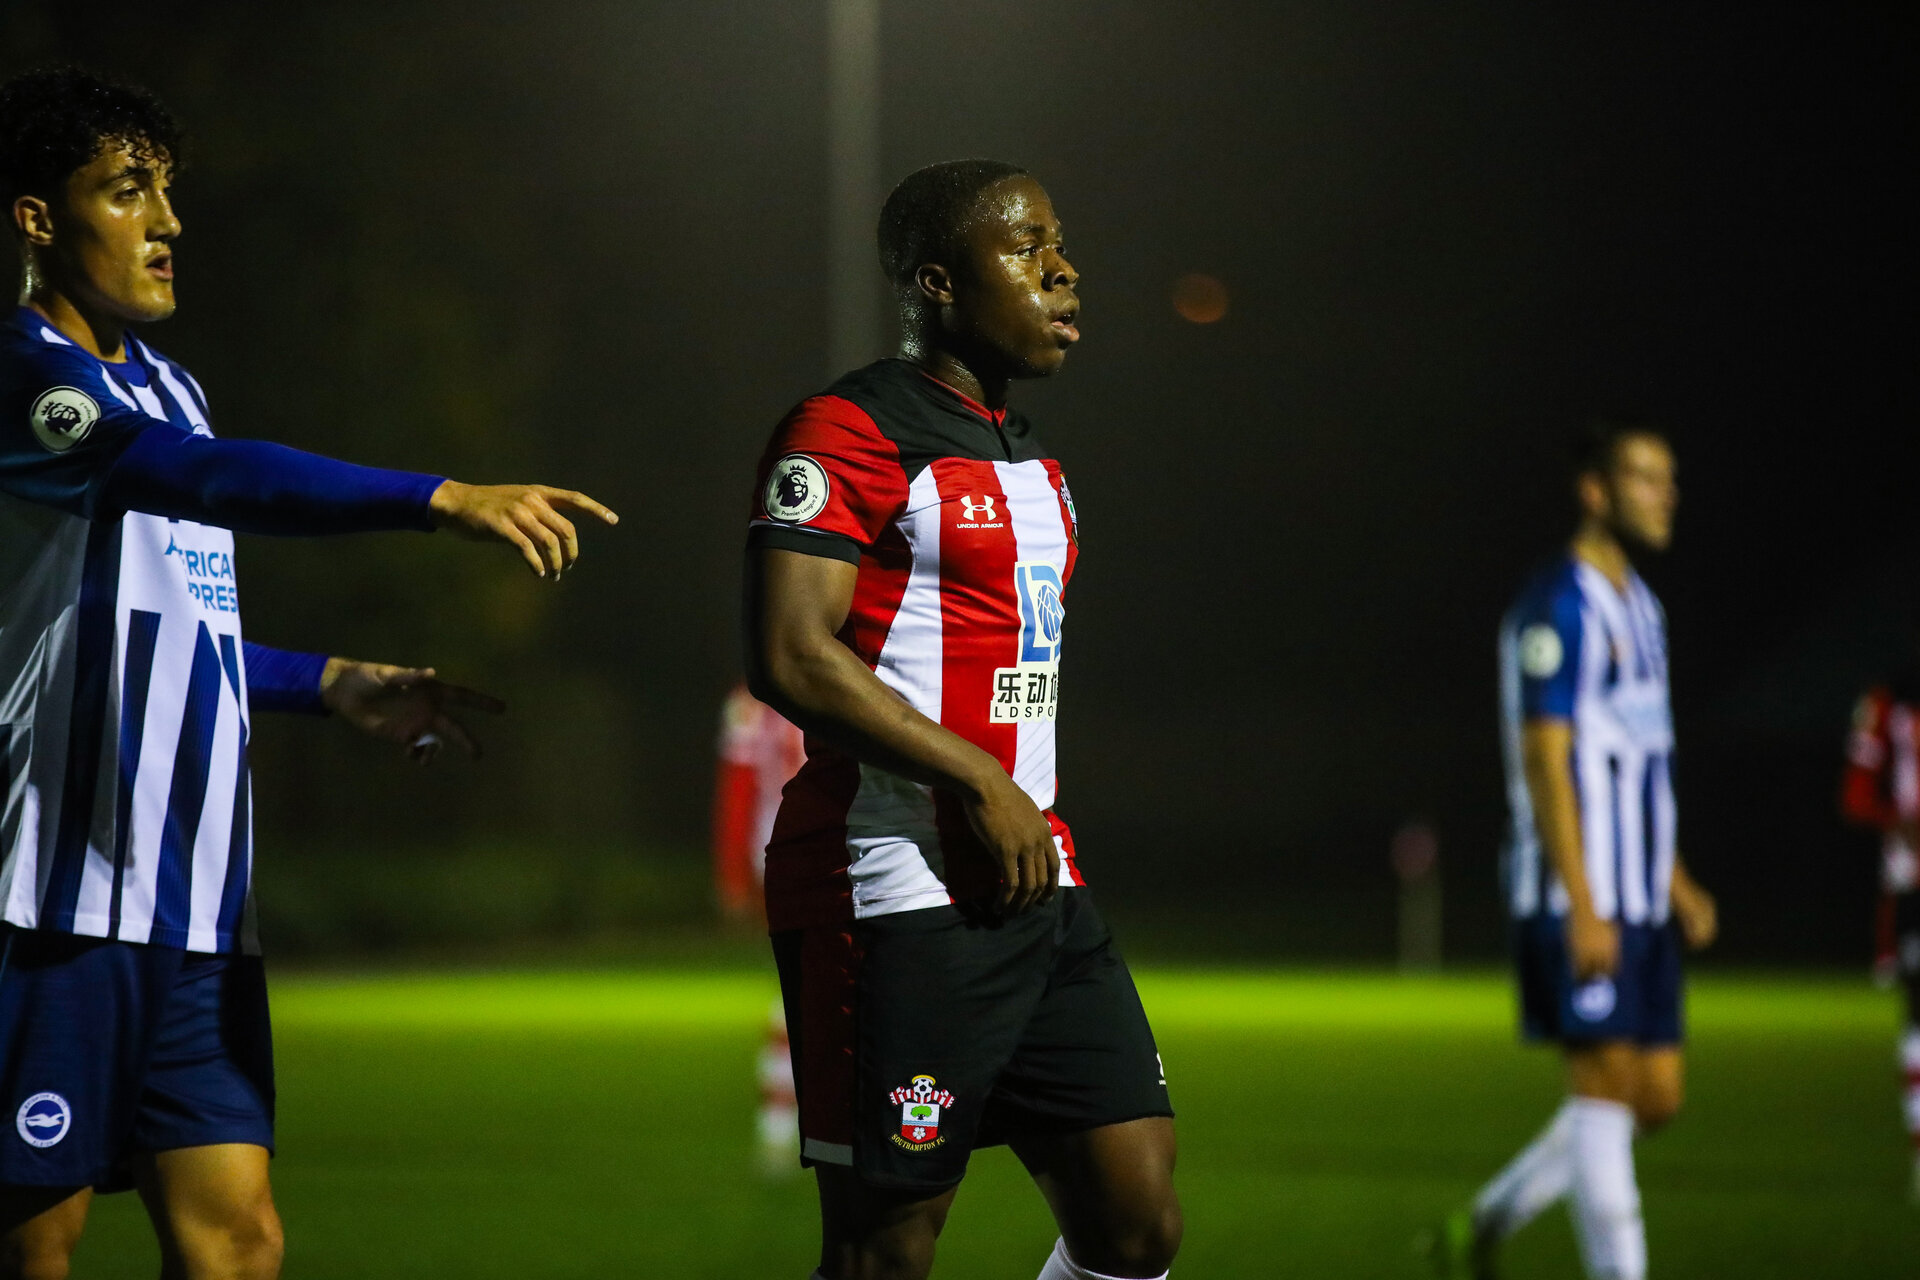 SOUTHAMPTON, ENGLAND - NOVEMBER 01: Michael Obafemi of Southampton FC during the Premier League 2 match between Southampton FC and Brighton & Hove Albion at the Staplewood Campus on November 01, 2019 in Southampton, England